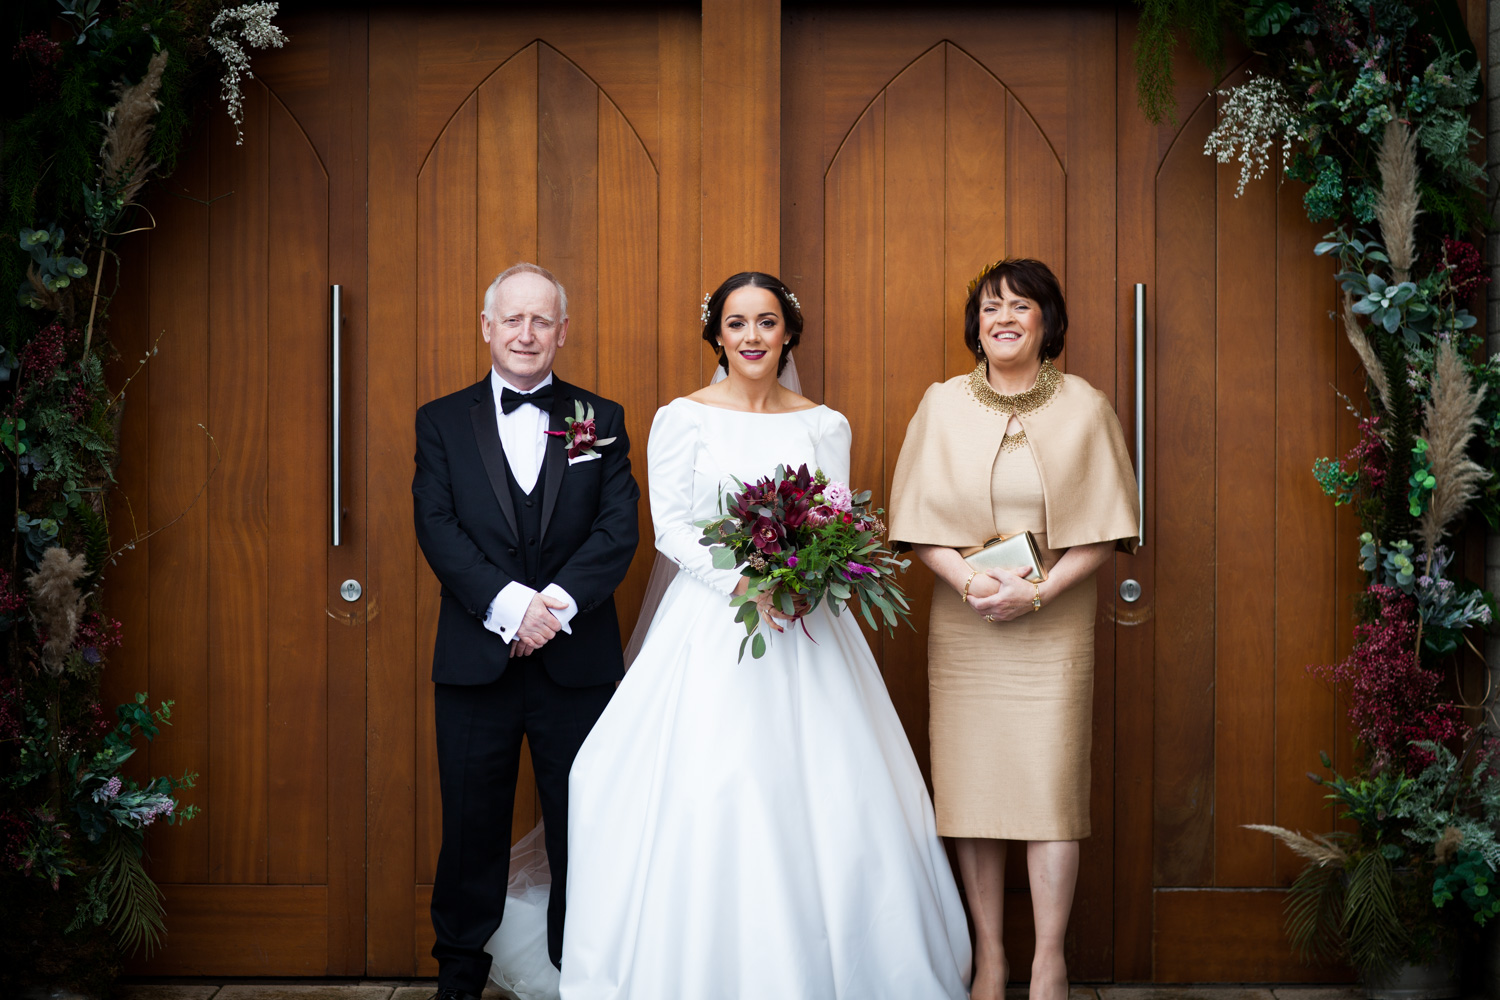 Mark_Barnes_Northern_Ireland_wedding_photographer_Innishowen_Gateway_Donegal_Wedding_photography_Donegal_wedding_photographer-18.jpg